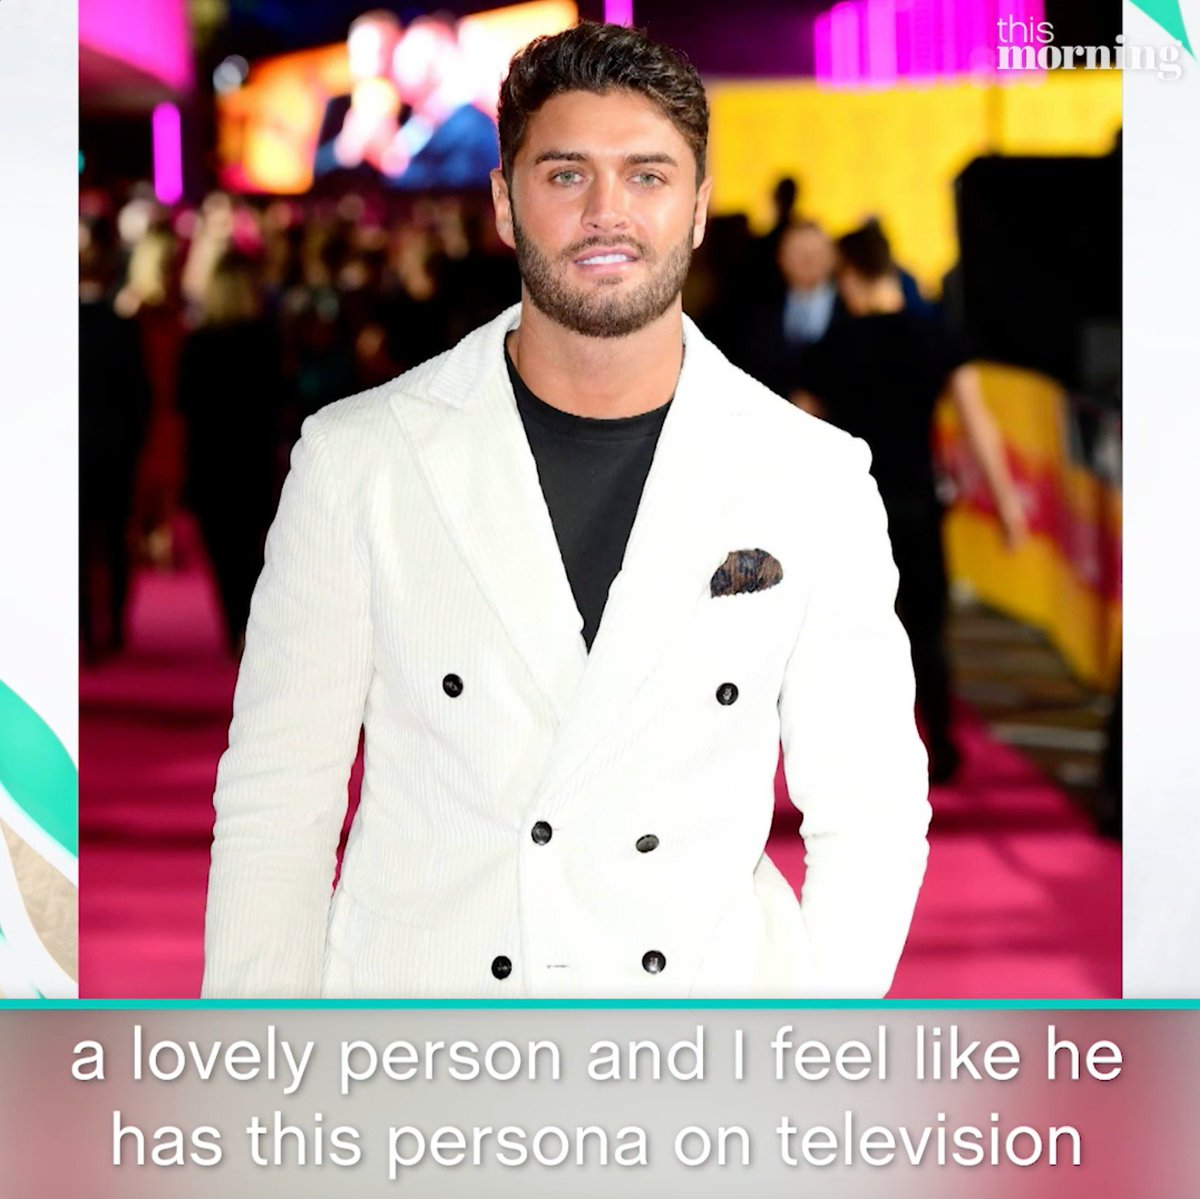 This Morning's photo on Mike Thalassitis